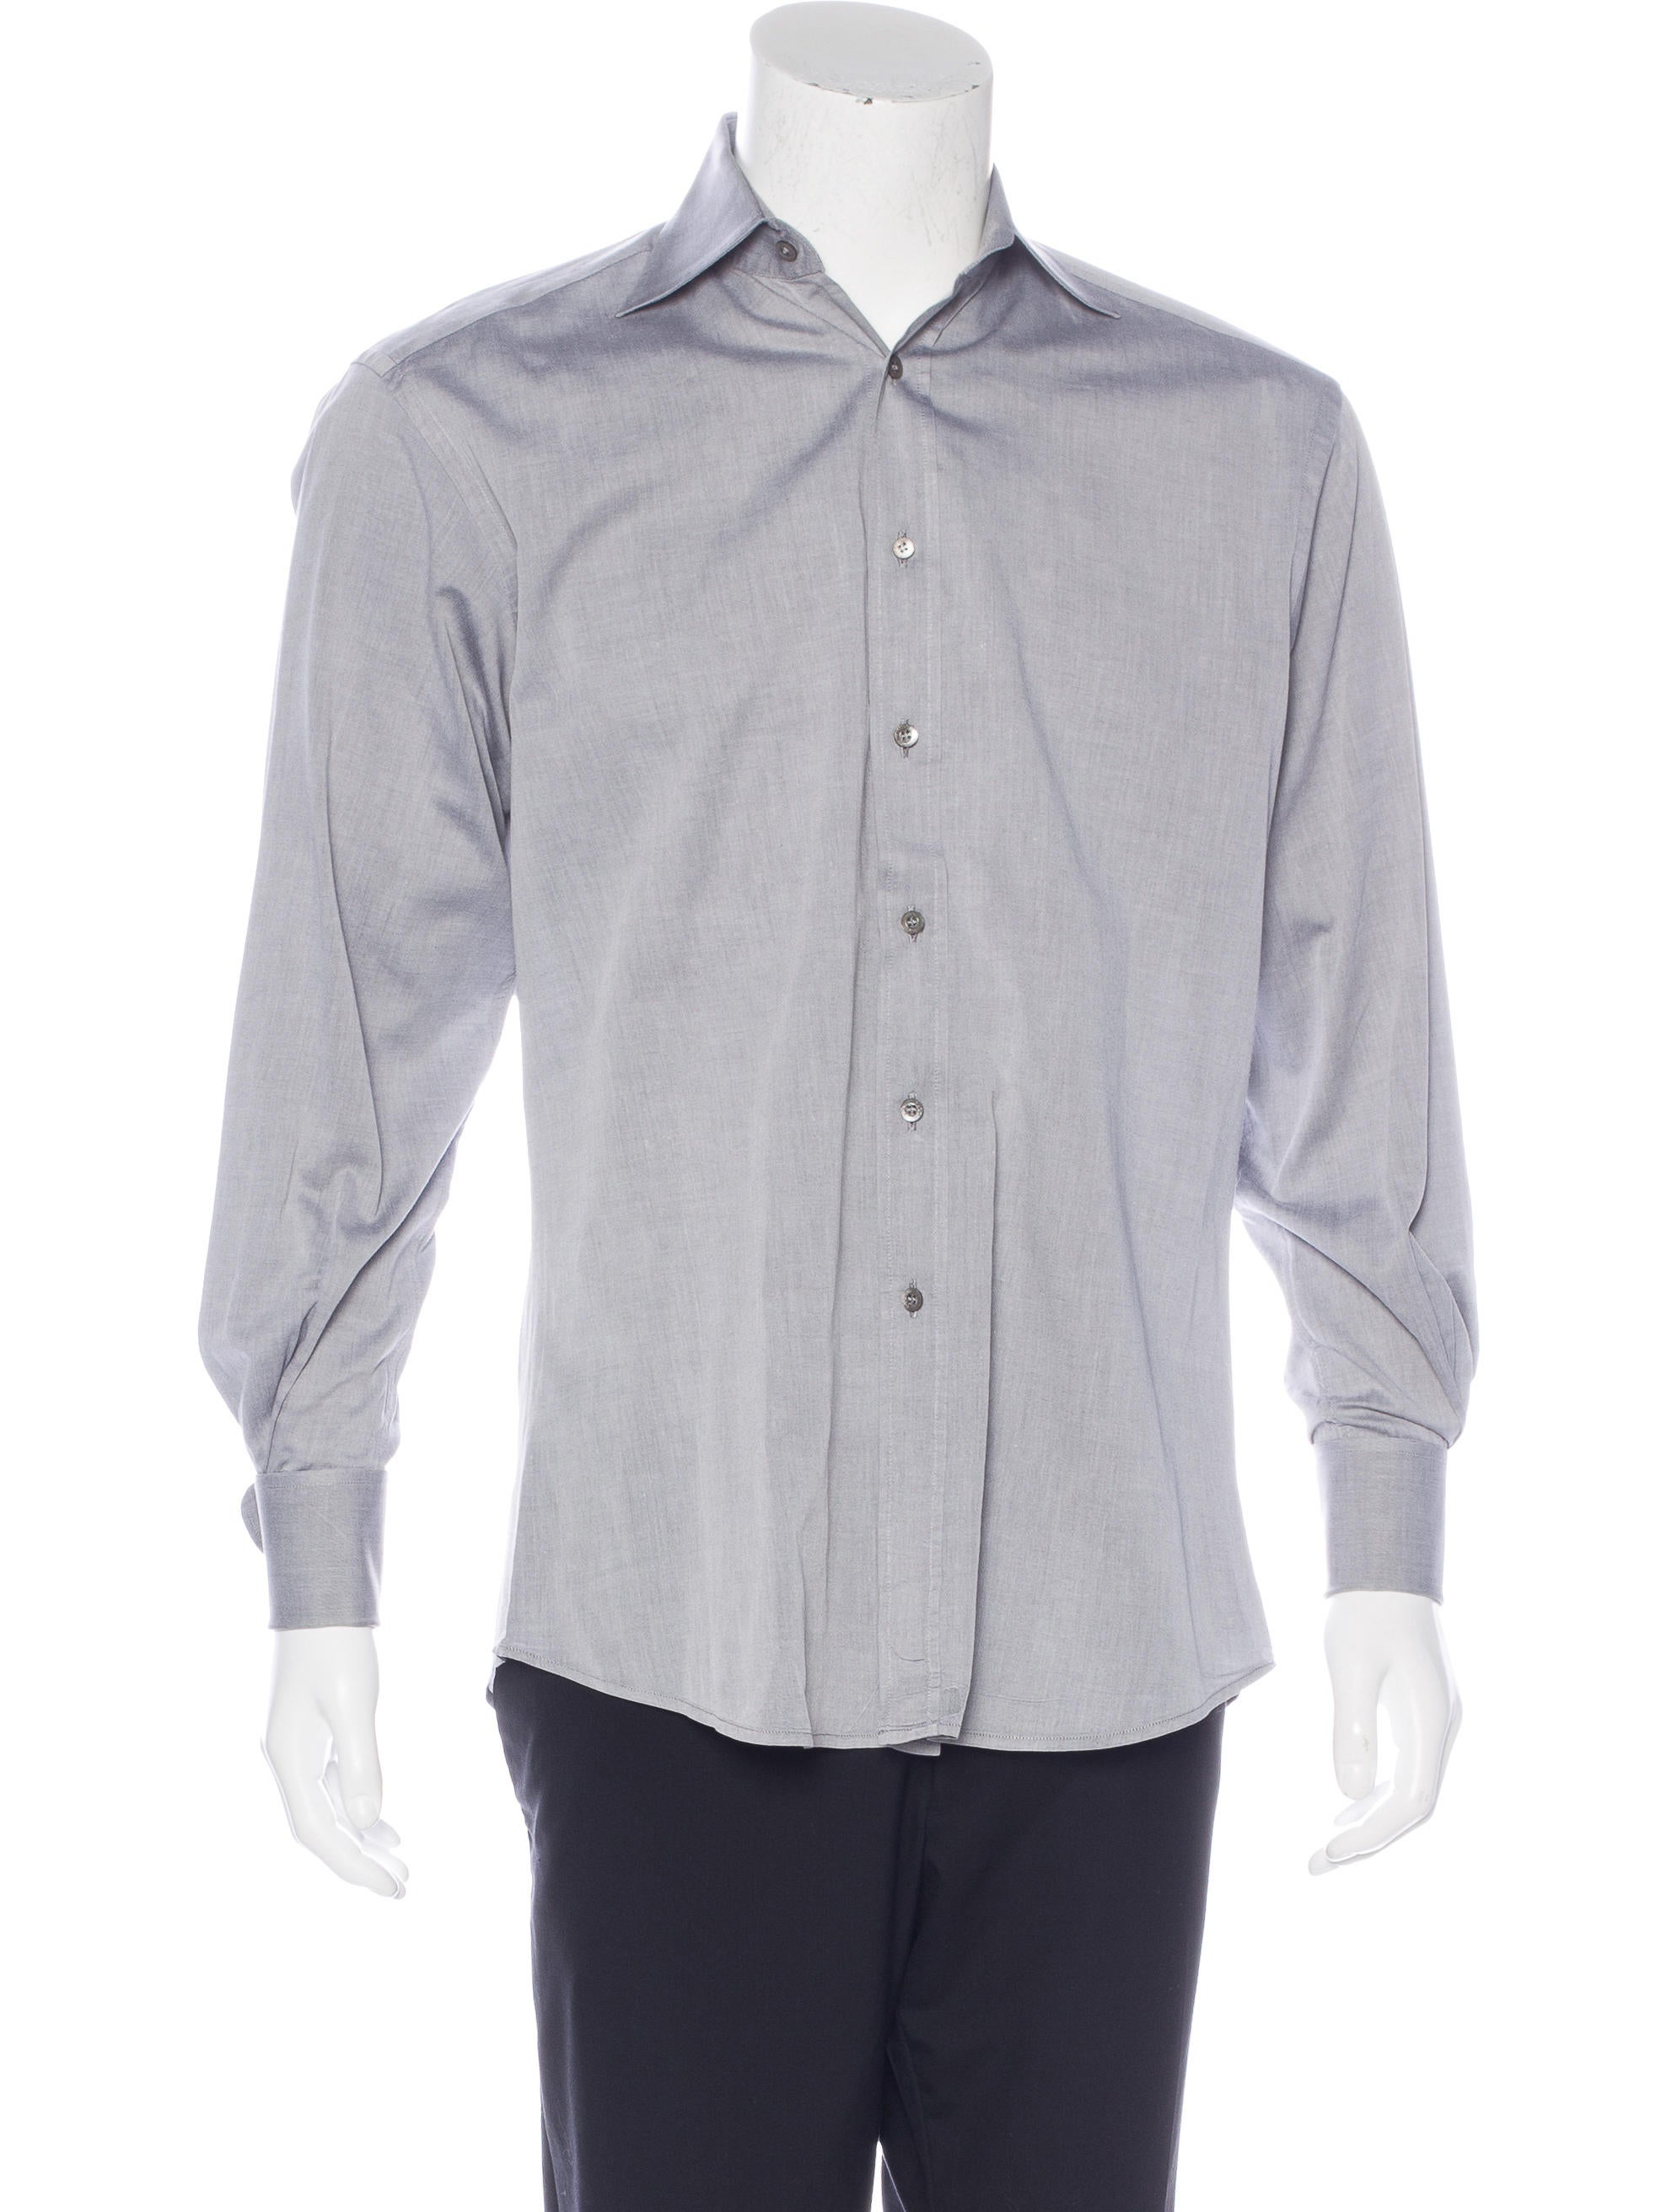 Gucci french cuff dress shirt clothing guc153576 the for Mens dress shirts with french cuffs